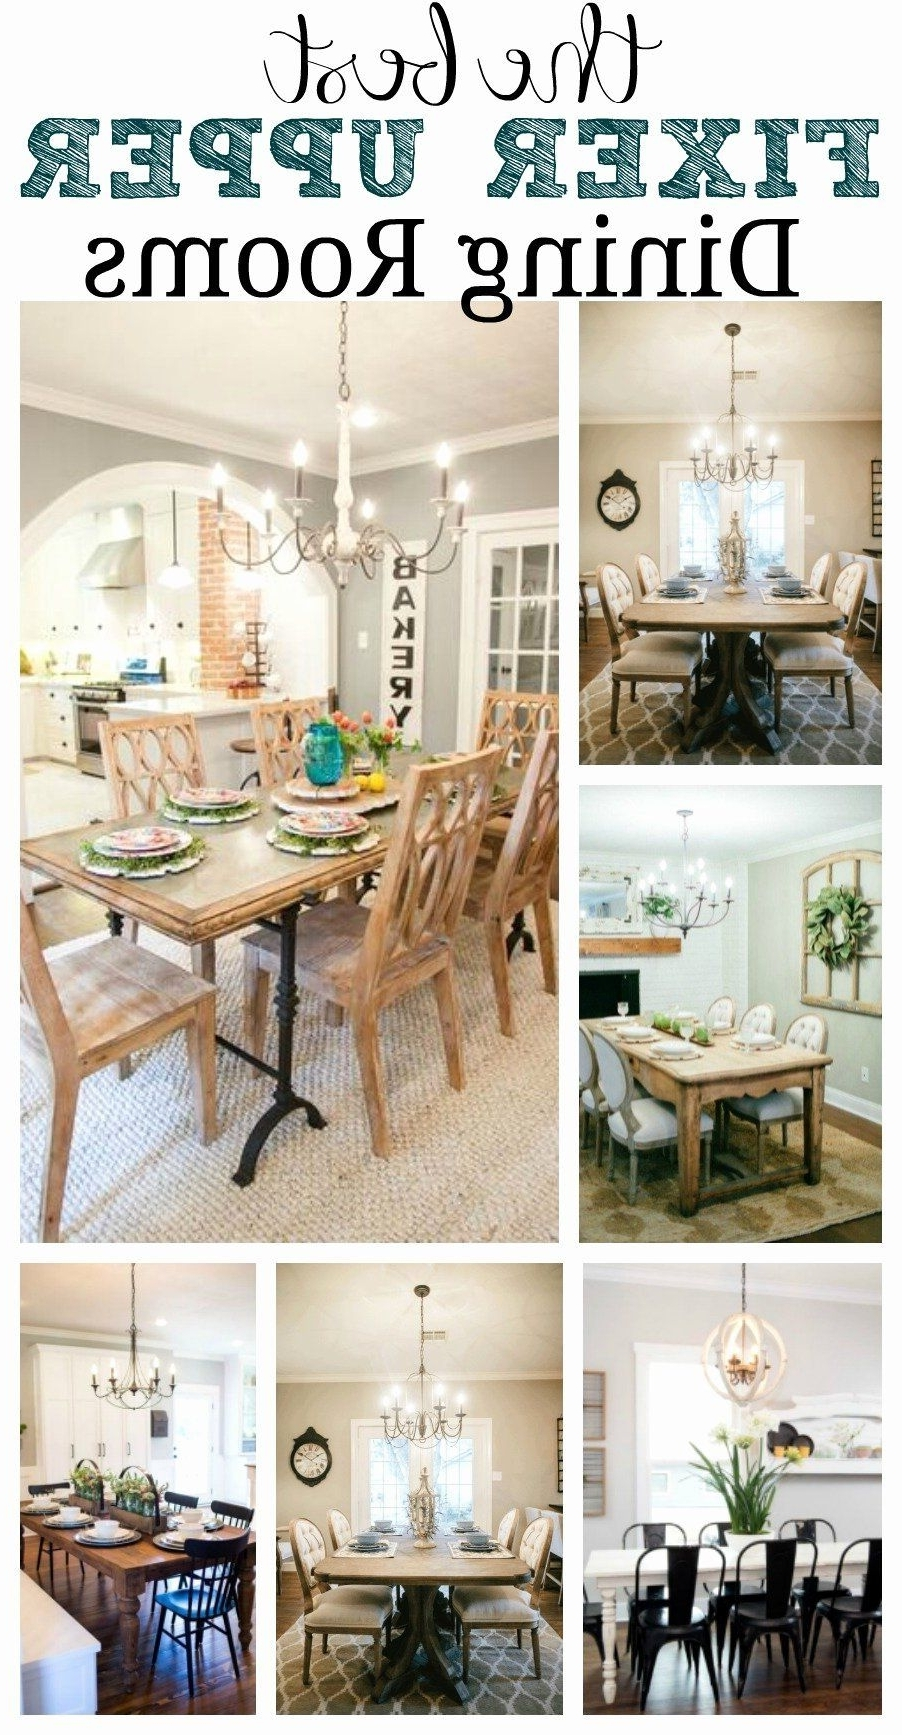 Farmhouse Style Dining Room Decorating Ideas New Favorite 10+ Joanna Gaines Dining Room Decorating Ideas Inspirations